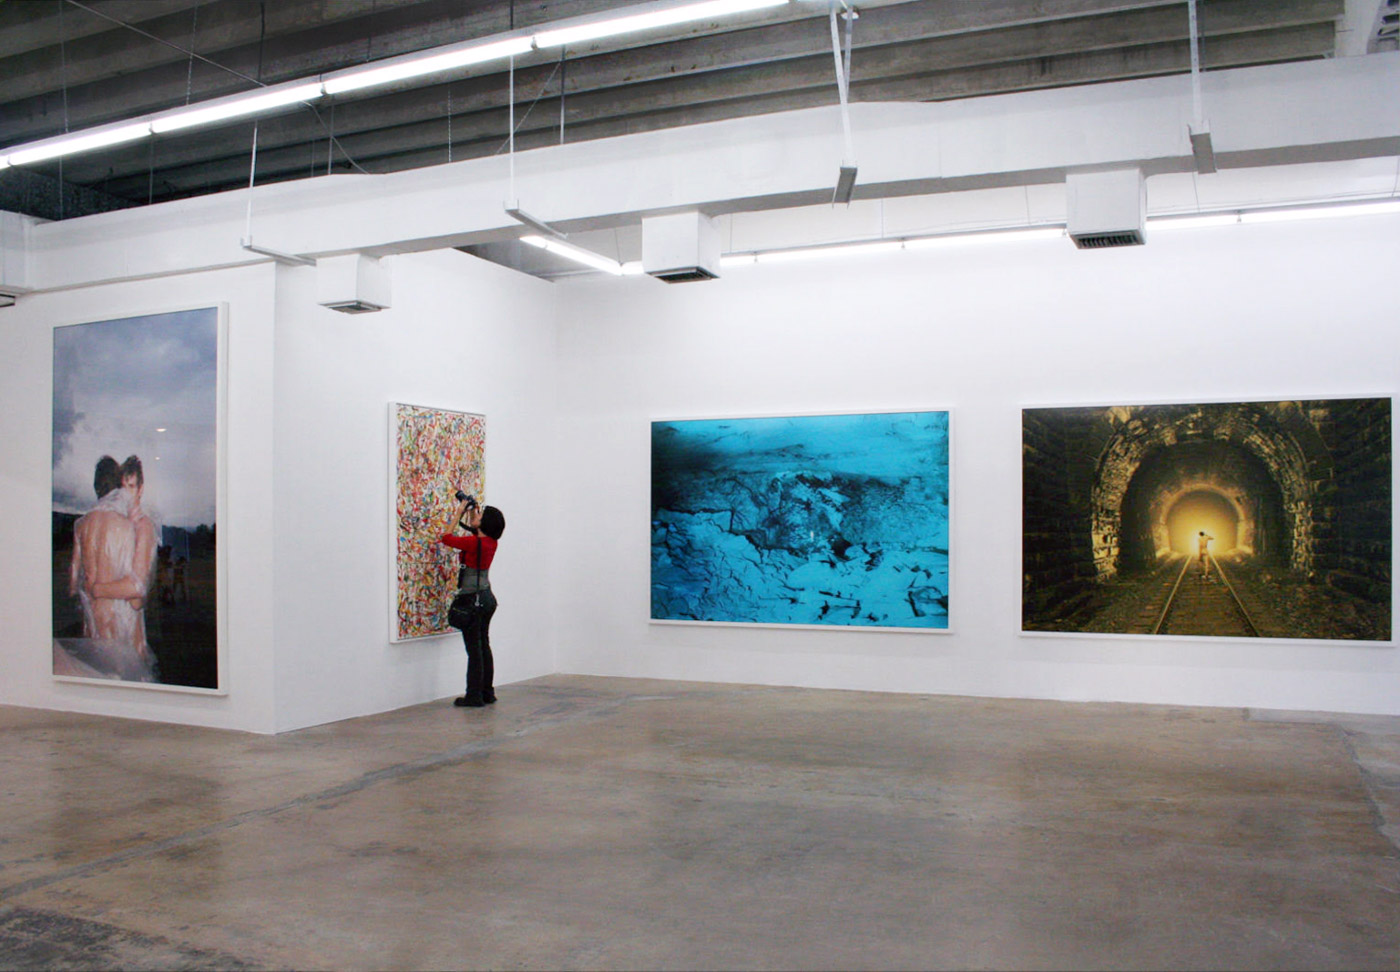 2011_The_Trilogy_Exhibition_The_Ring_Art_Center_Miami_FL_5_web.jpg